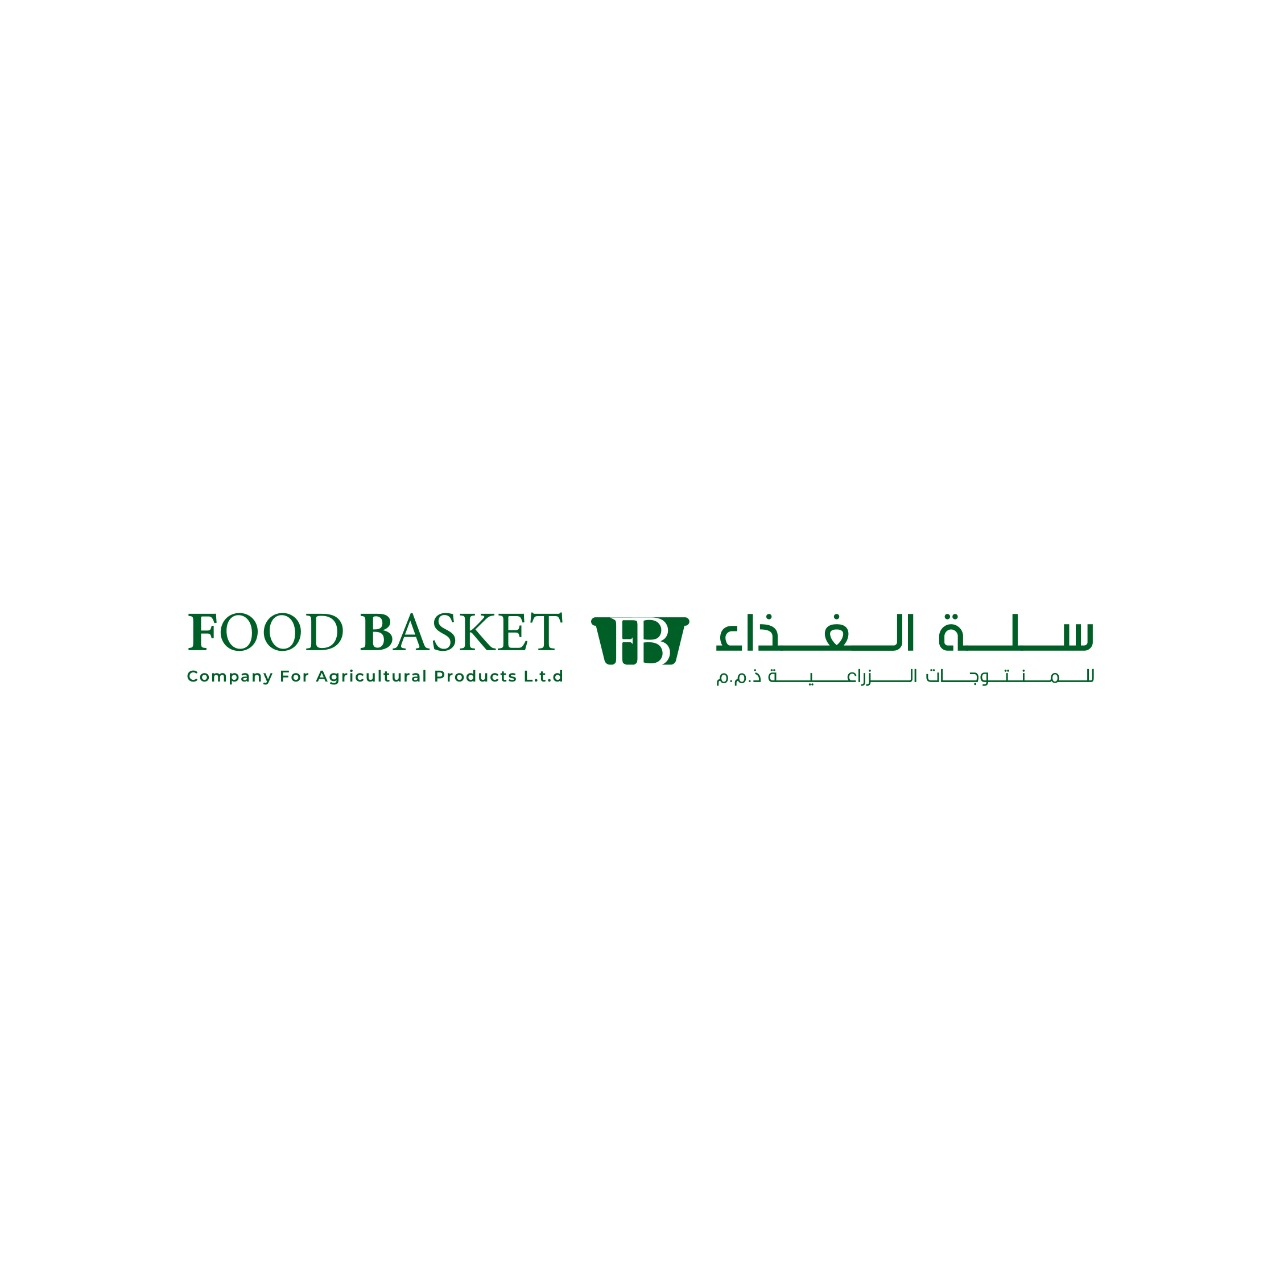 Food Basket for agricultural products L.T.D.